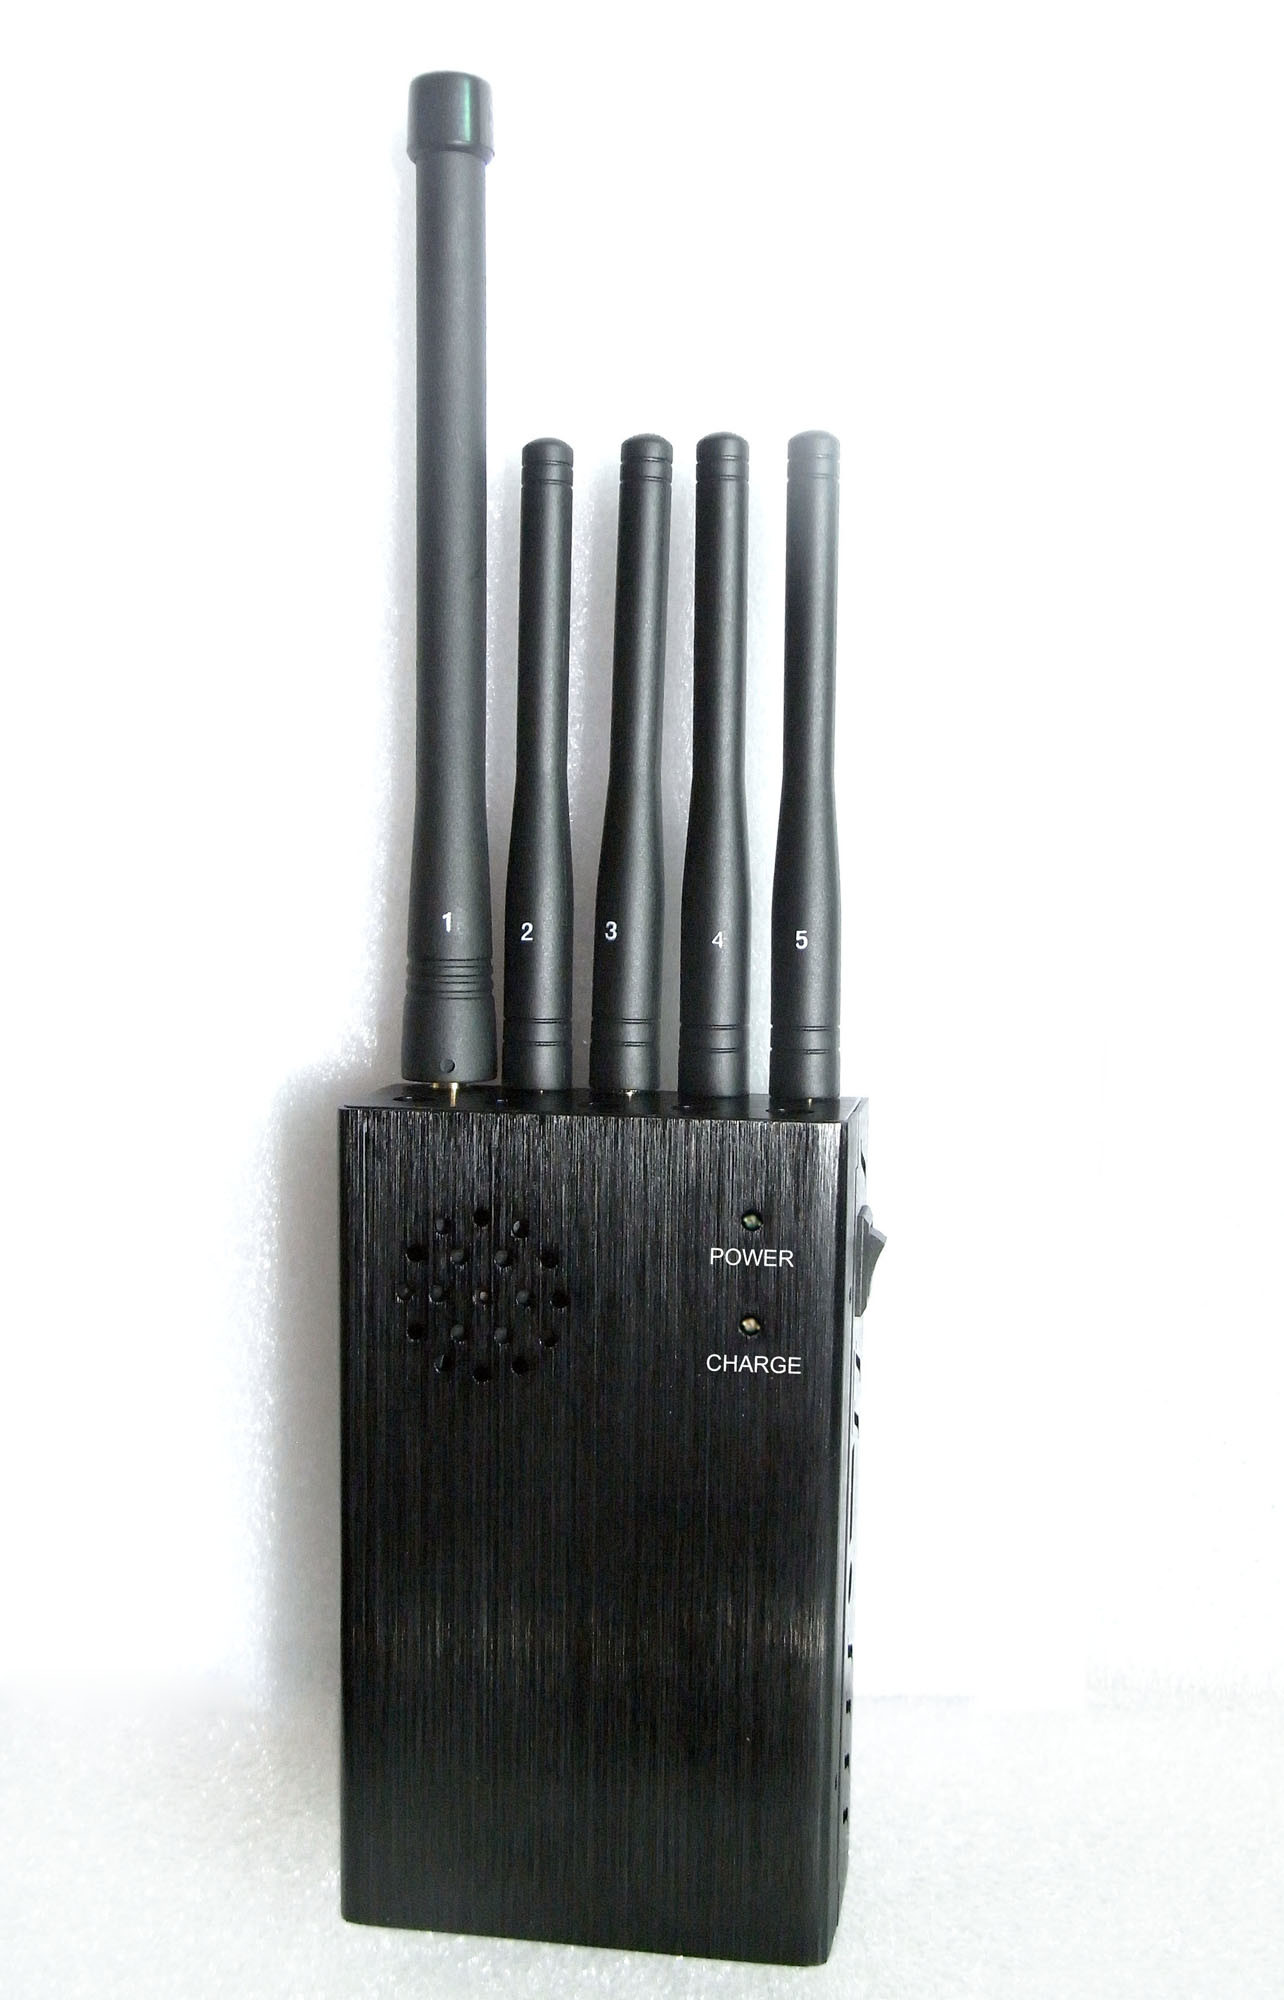 phone jammer india gdp